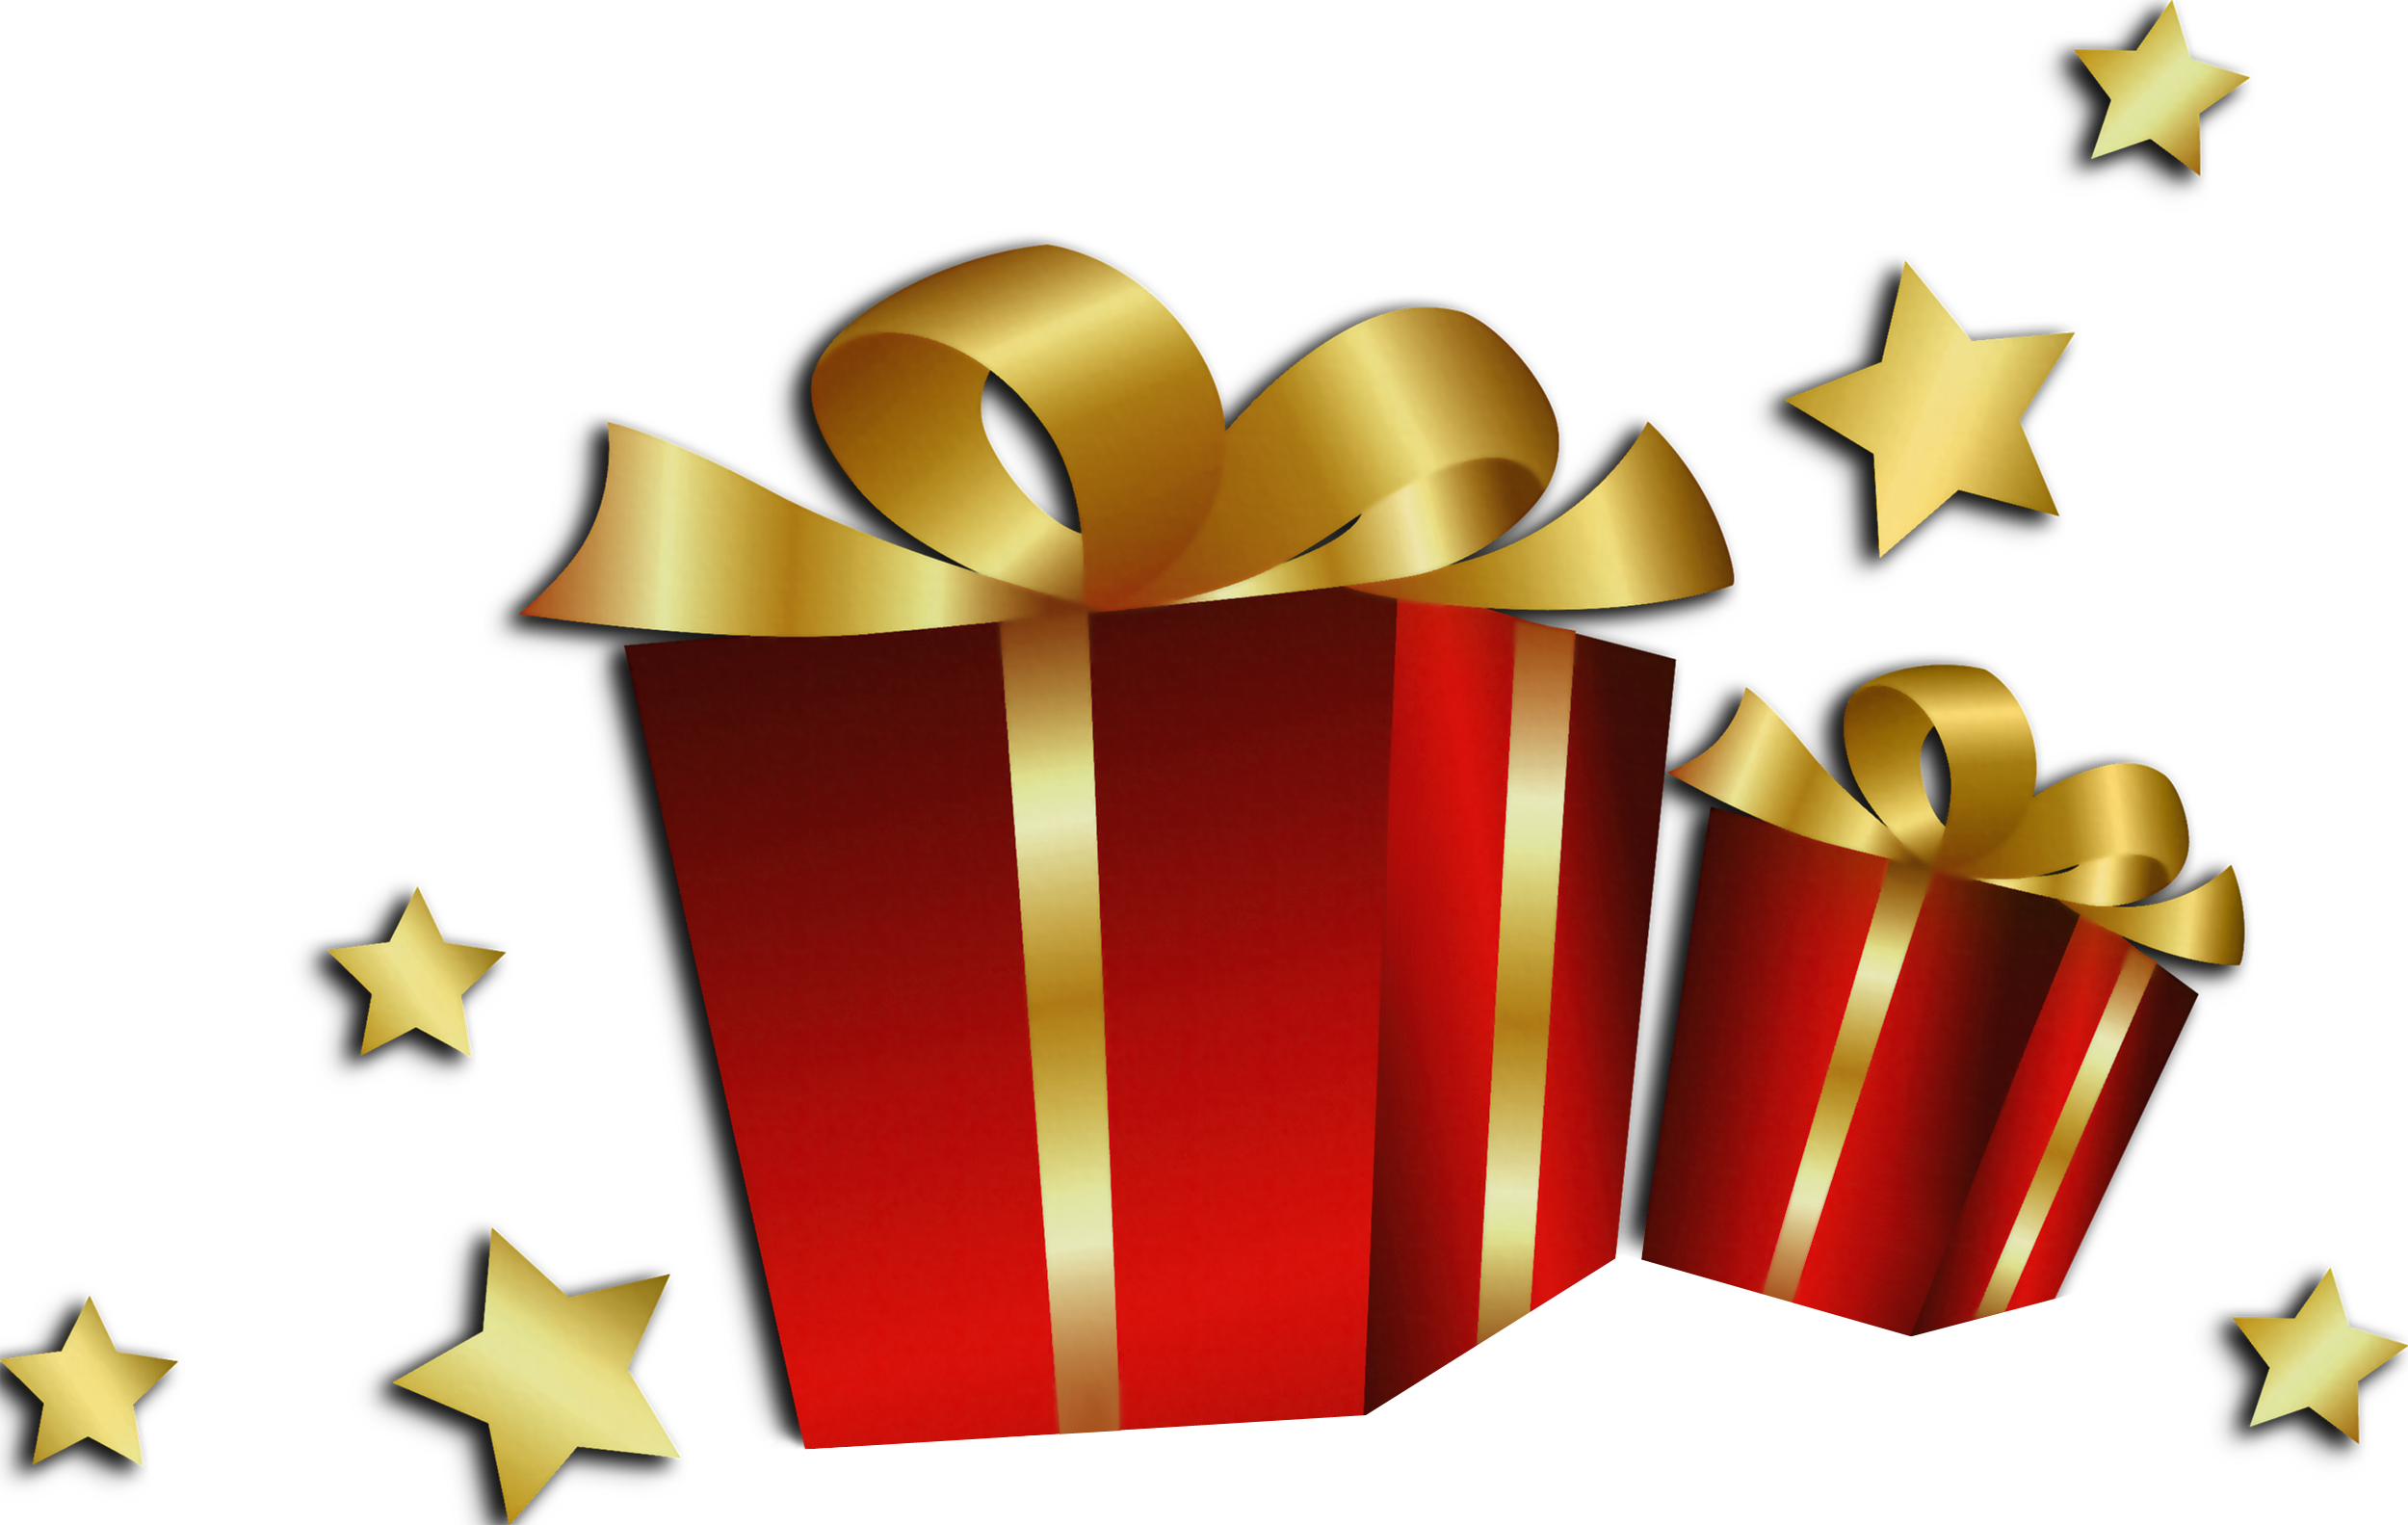 Christmas present clipart free picture freeuse Transparent Christmas Red Gift Boxes | Gallery Yopriceville - High ... picture freeuse